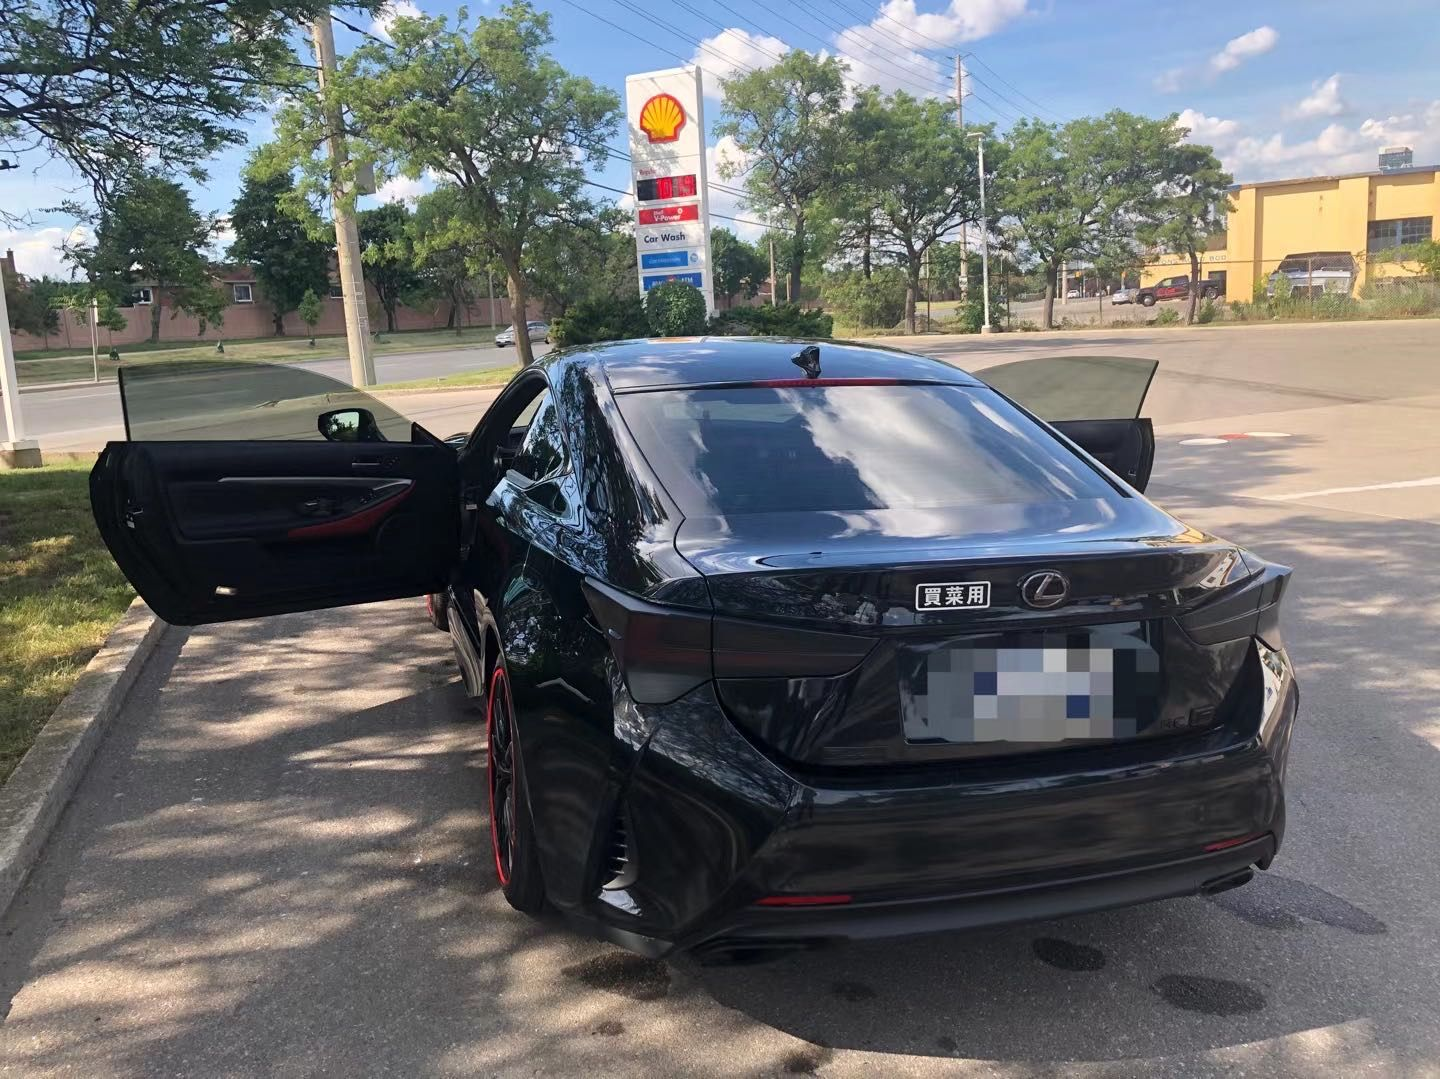 2019 Lexus RC 300 null - INFOCAR - Toronto's Most Comprehensive New and Used Auto Trading Platform